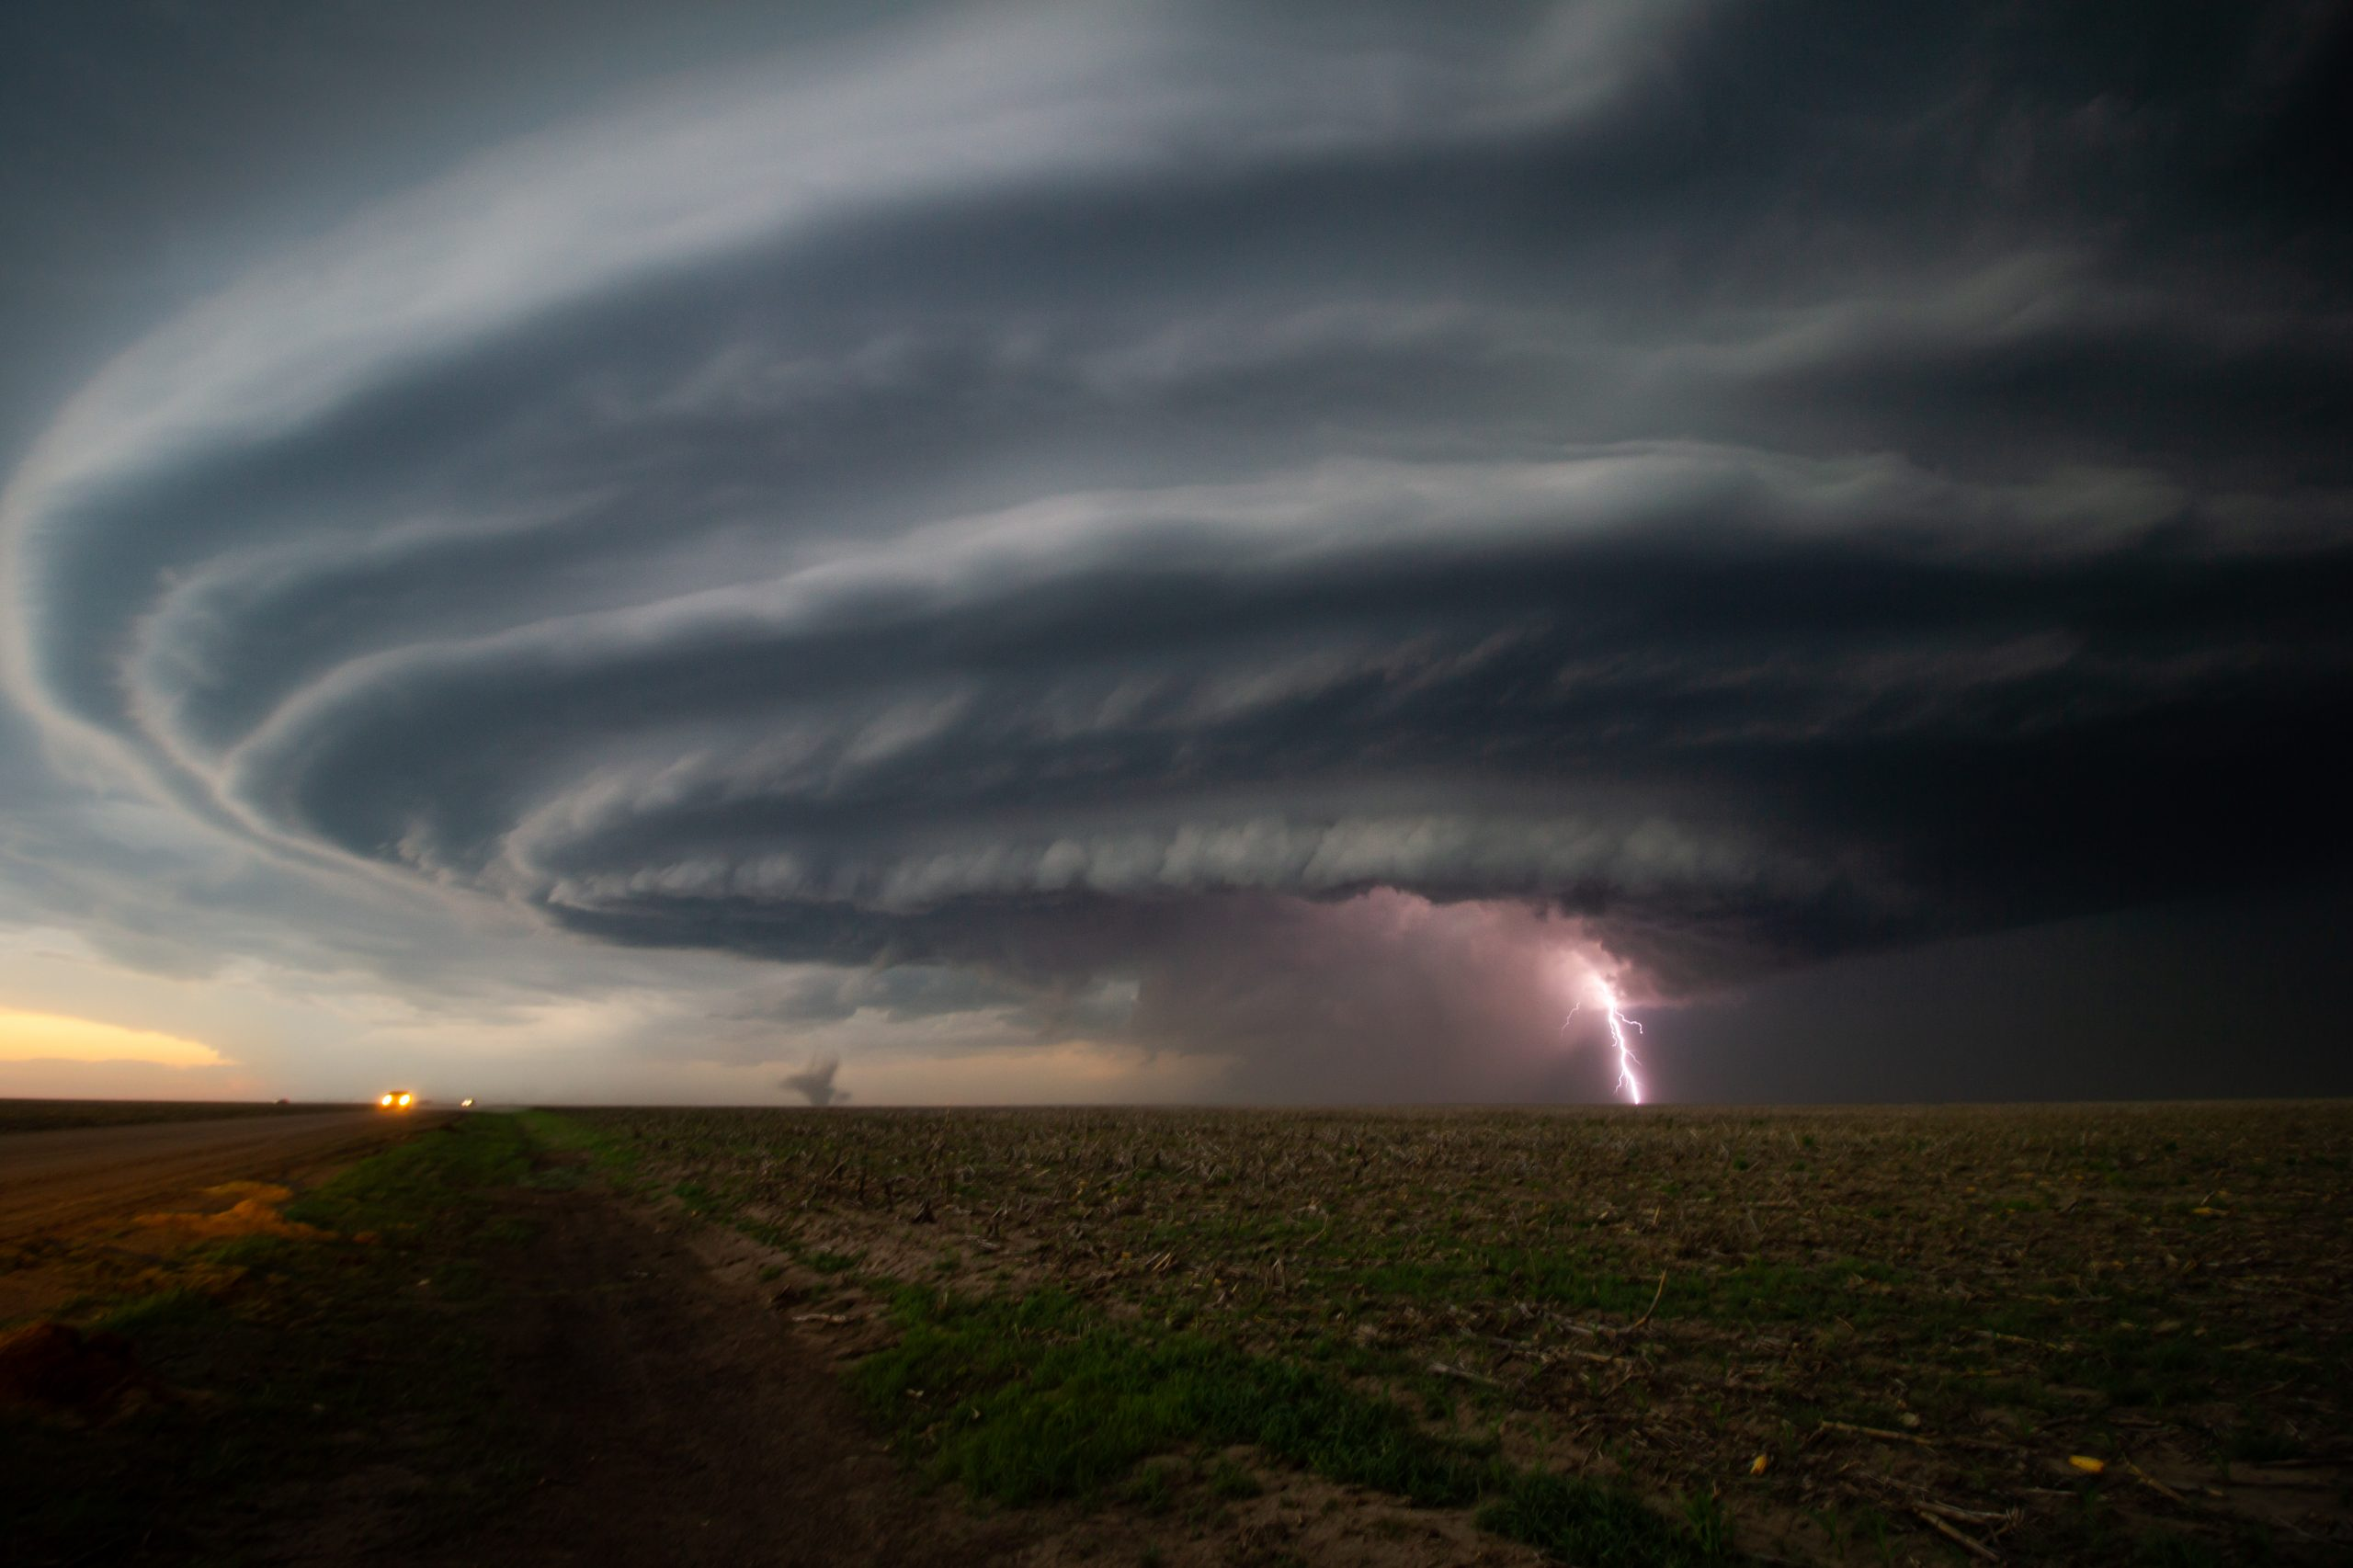 The Mothership! A large supercell thunderstorm with lightning and a small tornado over fields in Kansas, U.S.A., June 2019 (pic: @fitzpatricknoel). This was one of the most impressive and beautiful storms the team encountered on their trip.